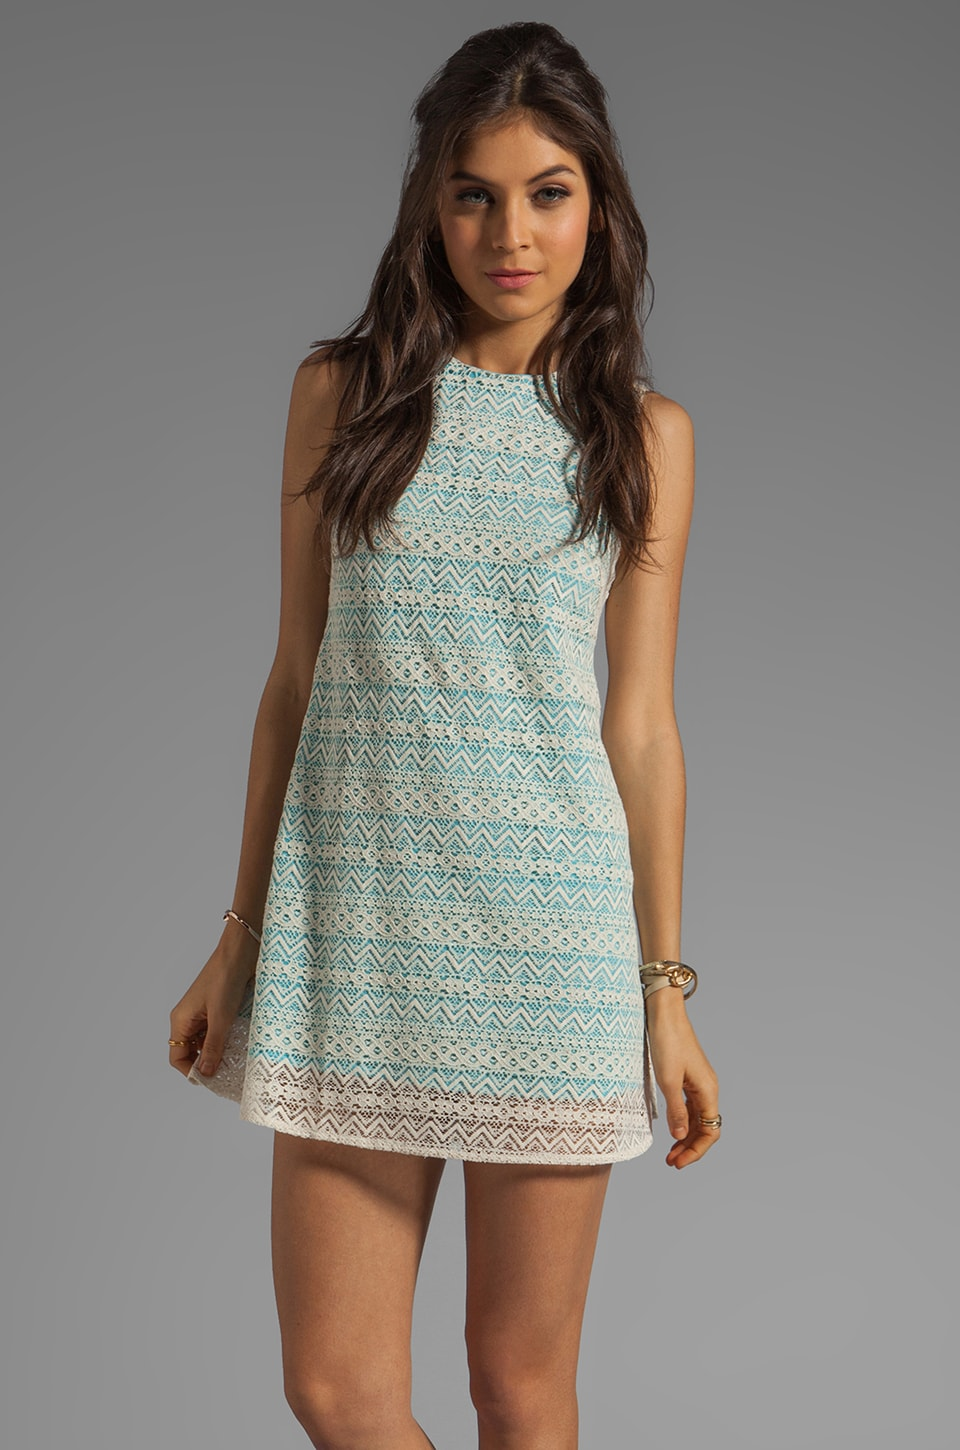 JARLO Tara Lace Tank Dress in Blue